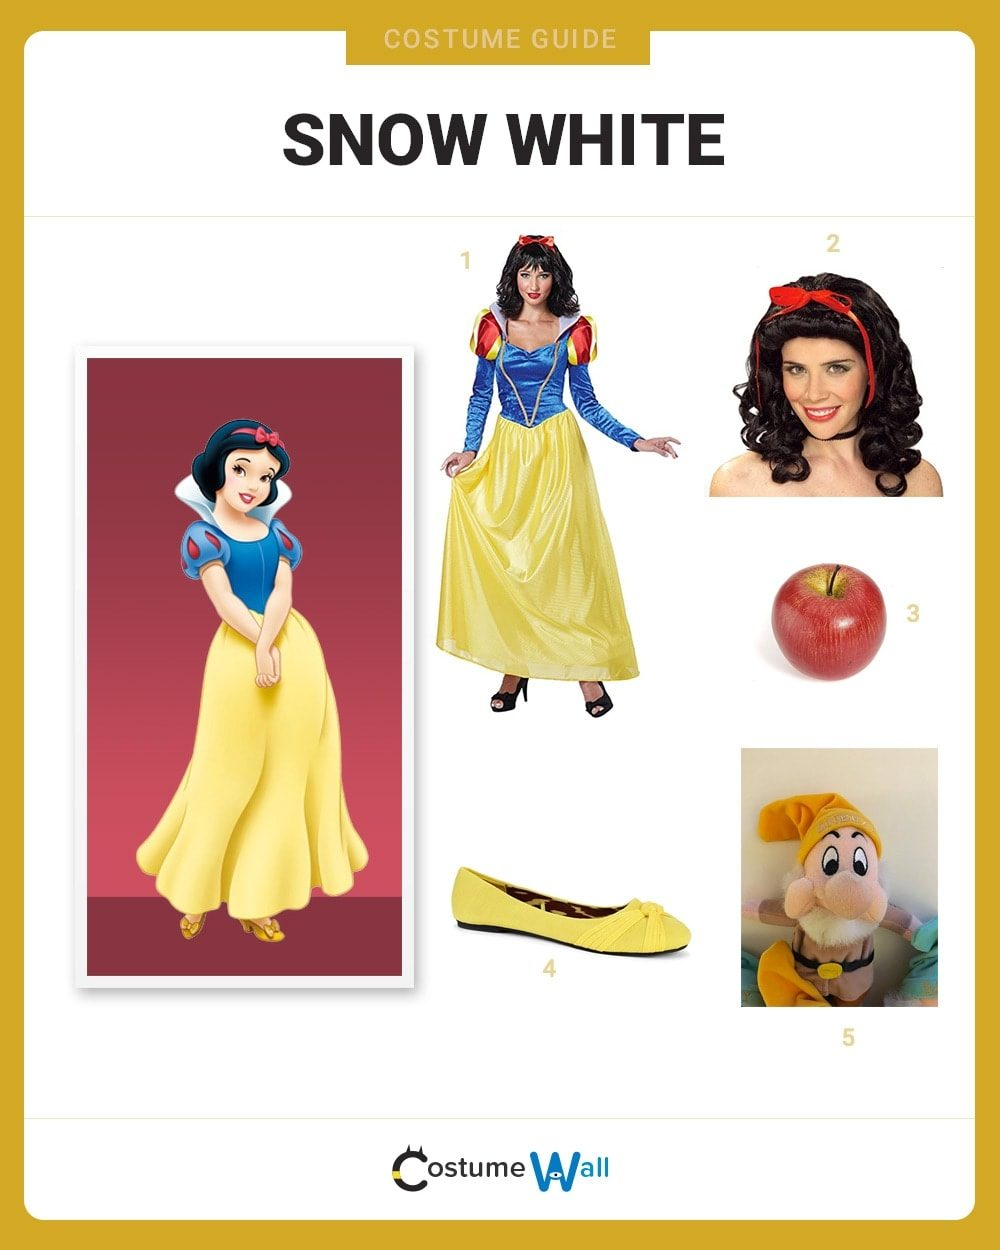 Snow White Costume Guide